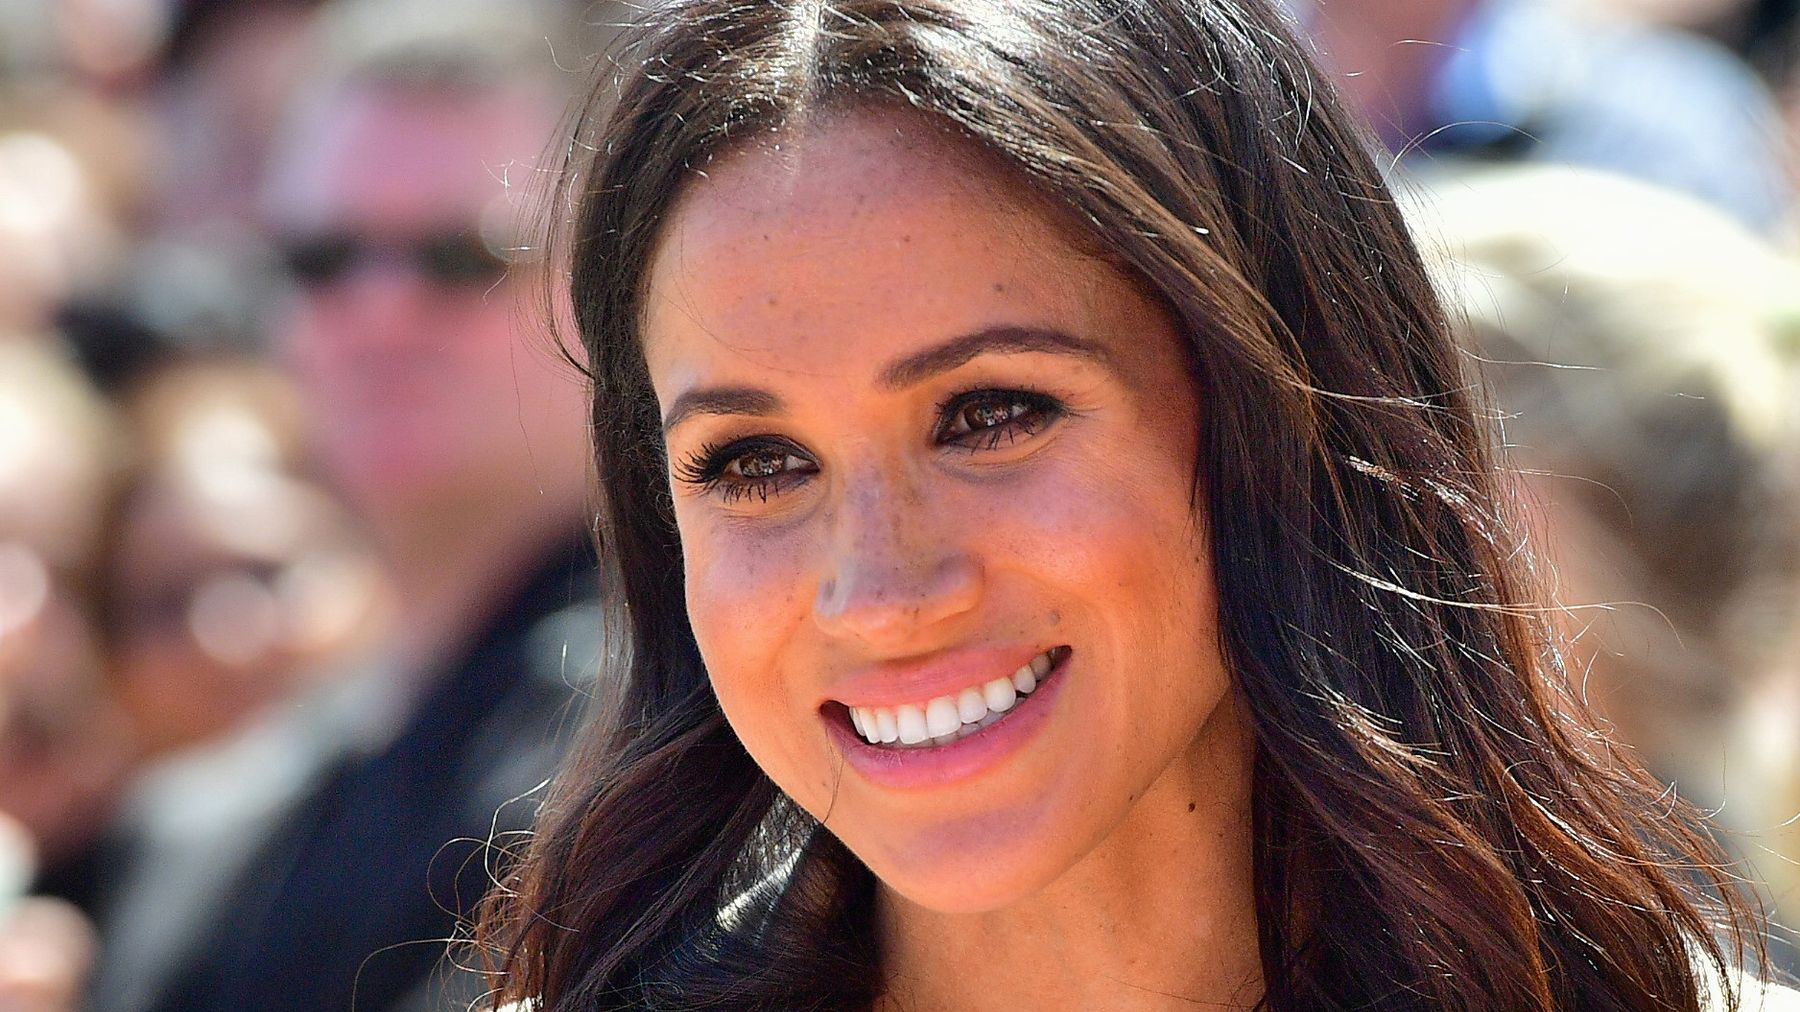 dfd121e9af988 Meghan Markle Is Officially Back On Instagram! | Grazia